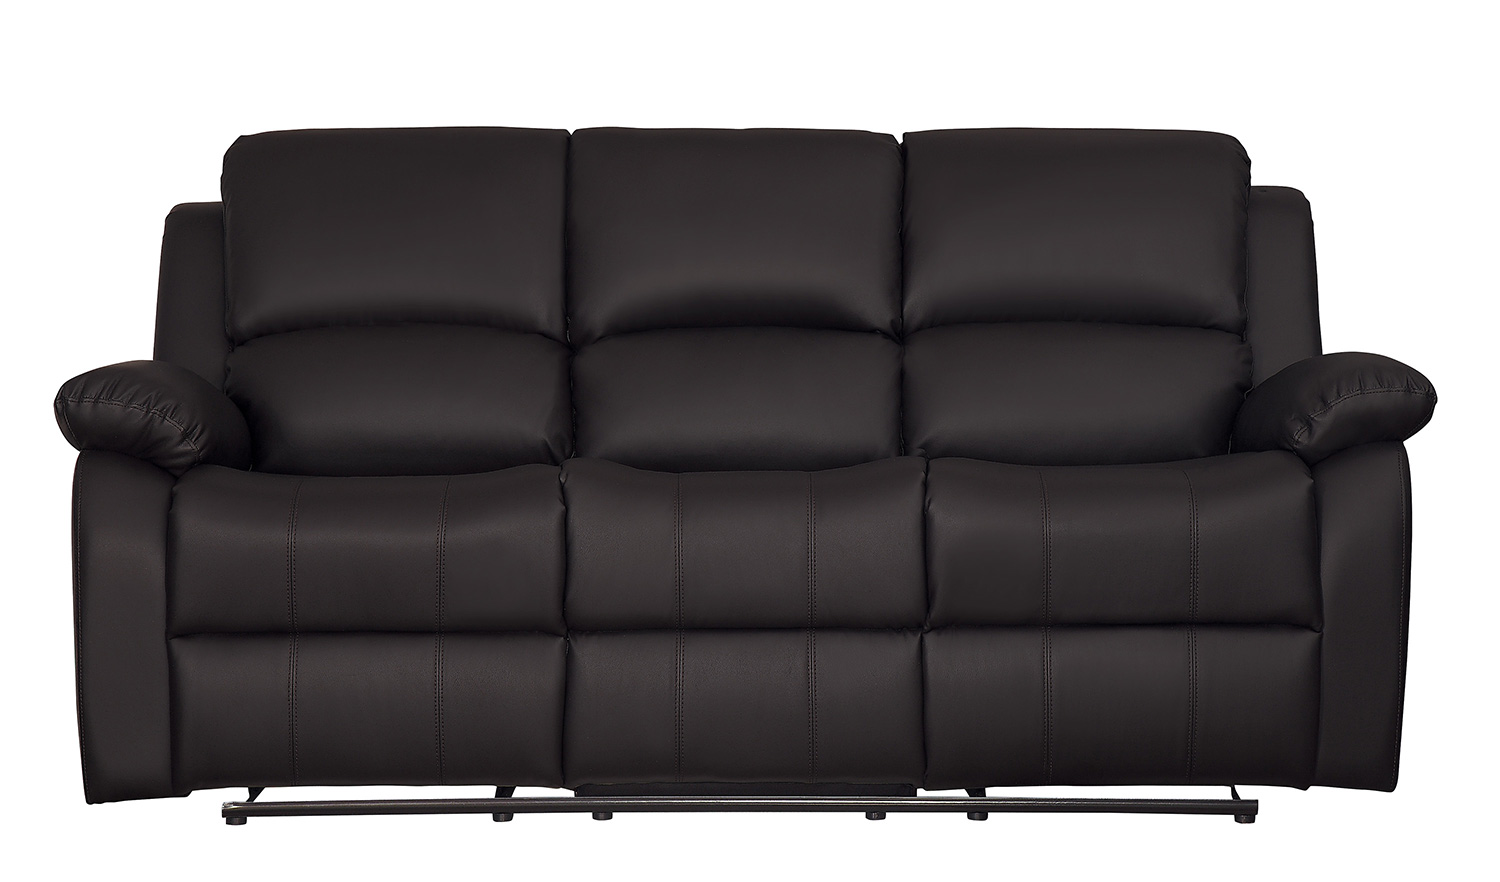 Homelegance Clarkdale Double Reclining Sofa With Center Drop-Down Cup Holders - Dark Brown - Dark brown bi-cast vinyl